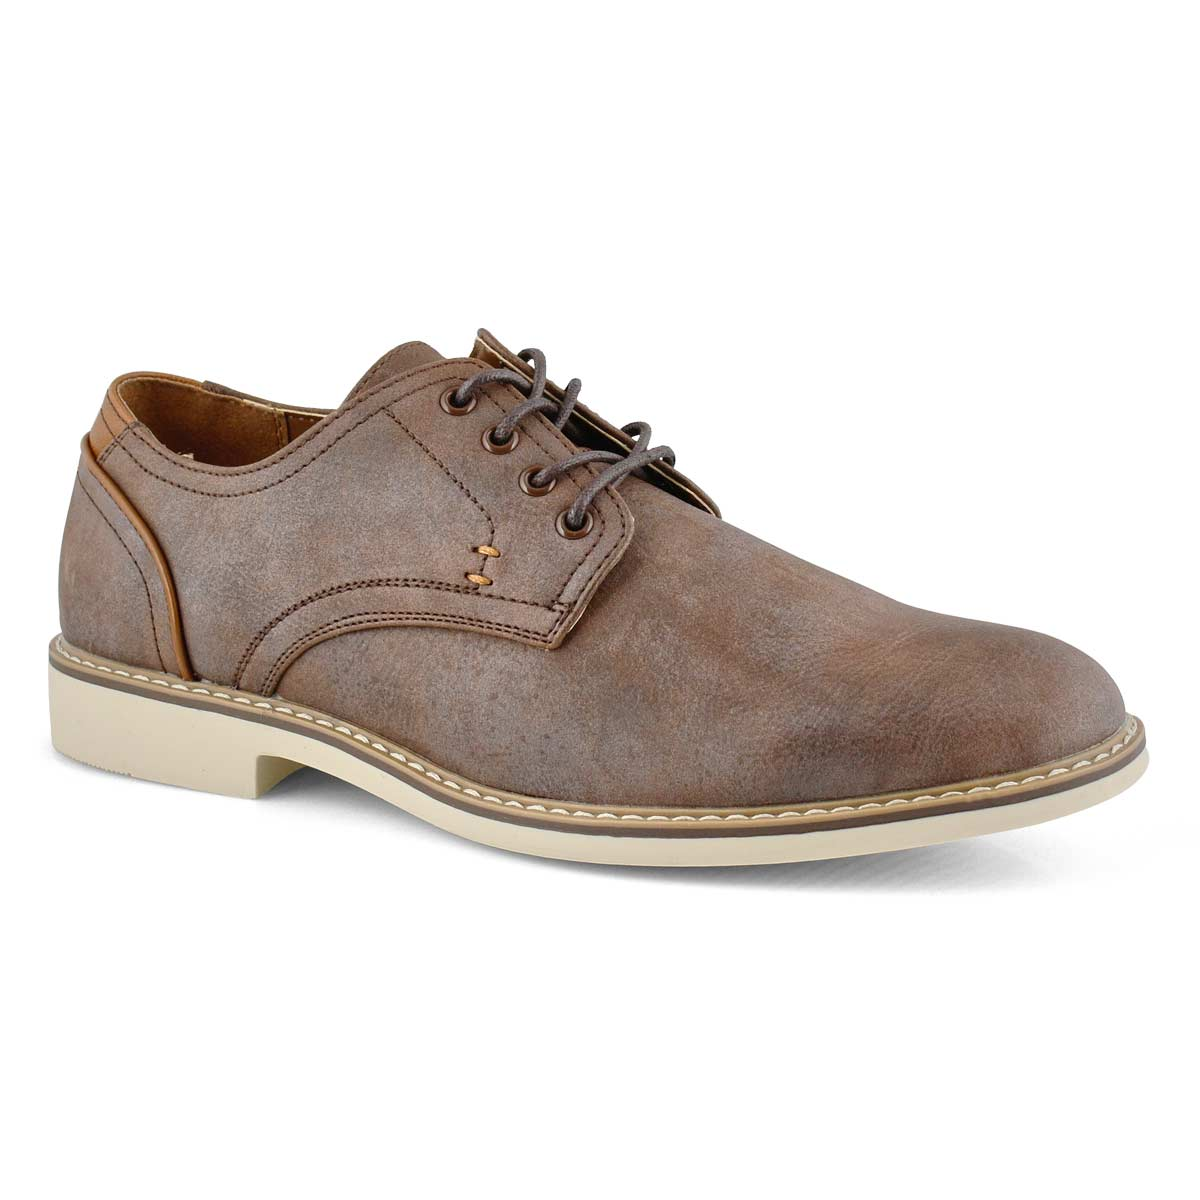 Mns Jamie brown lace up casual oxford